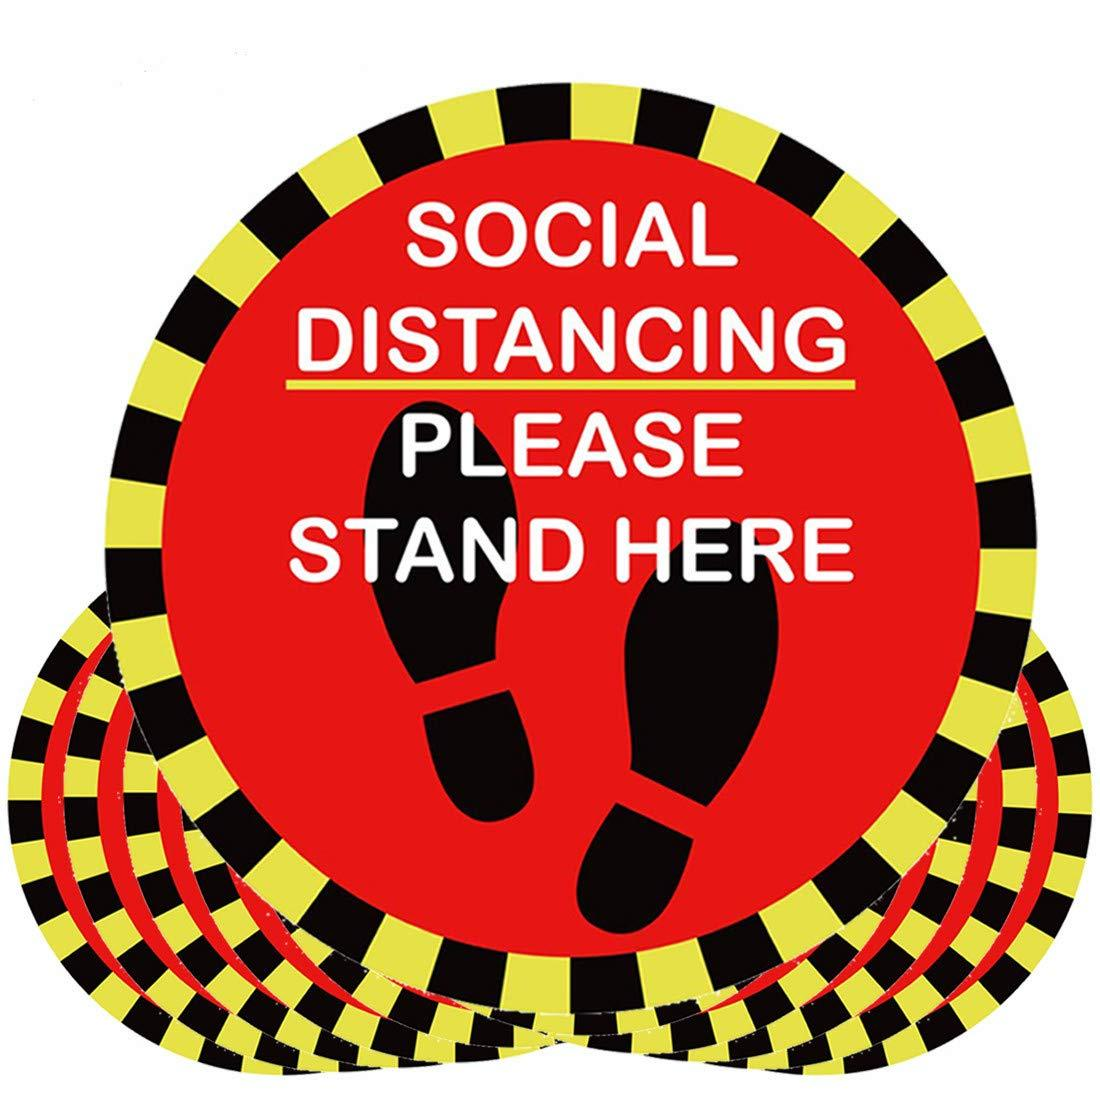 Max Capacity Signage & 5 Pack of Be Smart Social Distancing Floor Decals bundle - Mask It Now